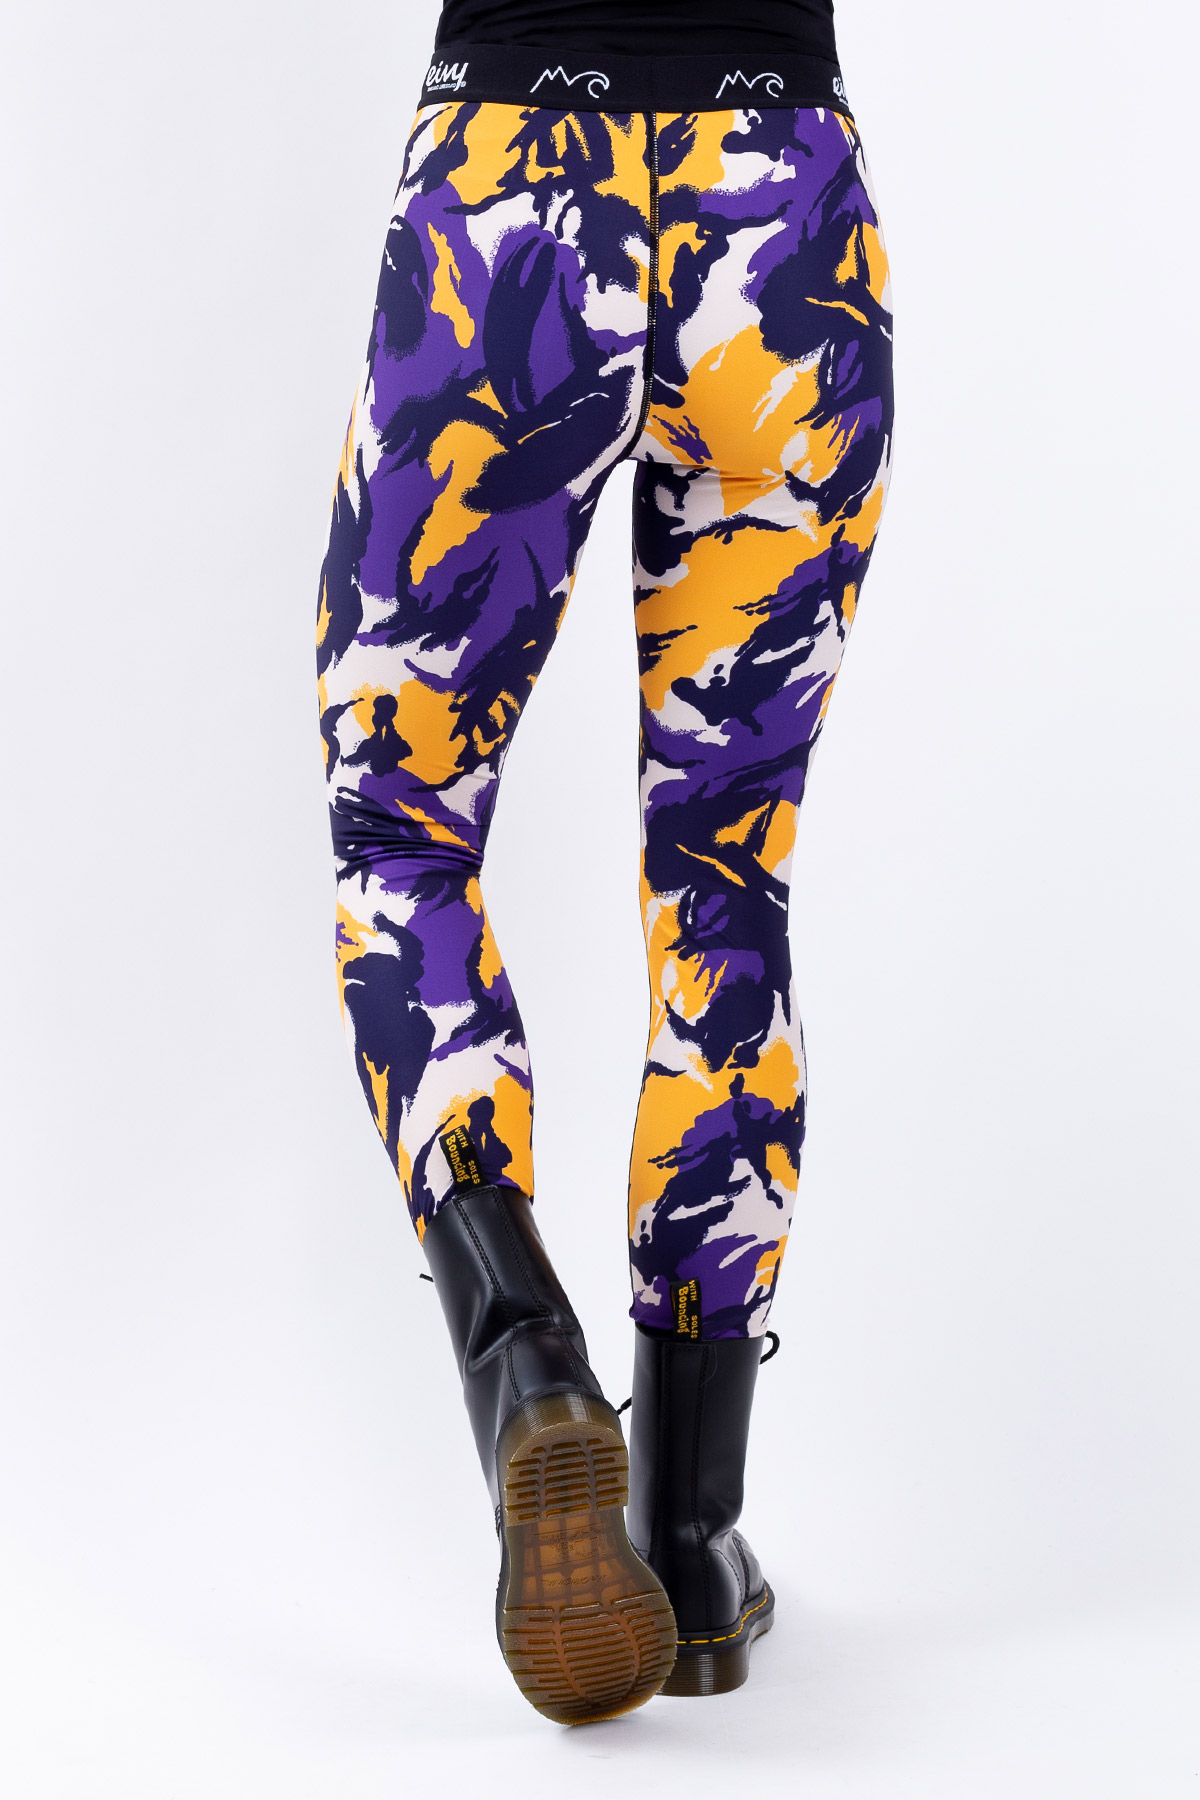 Underställ | Icecold Tights - Mountain Splash Purple